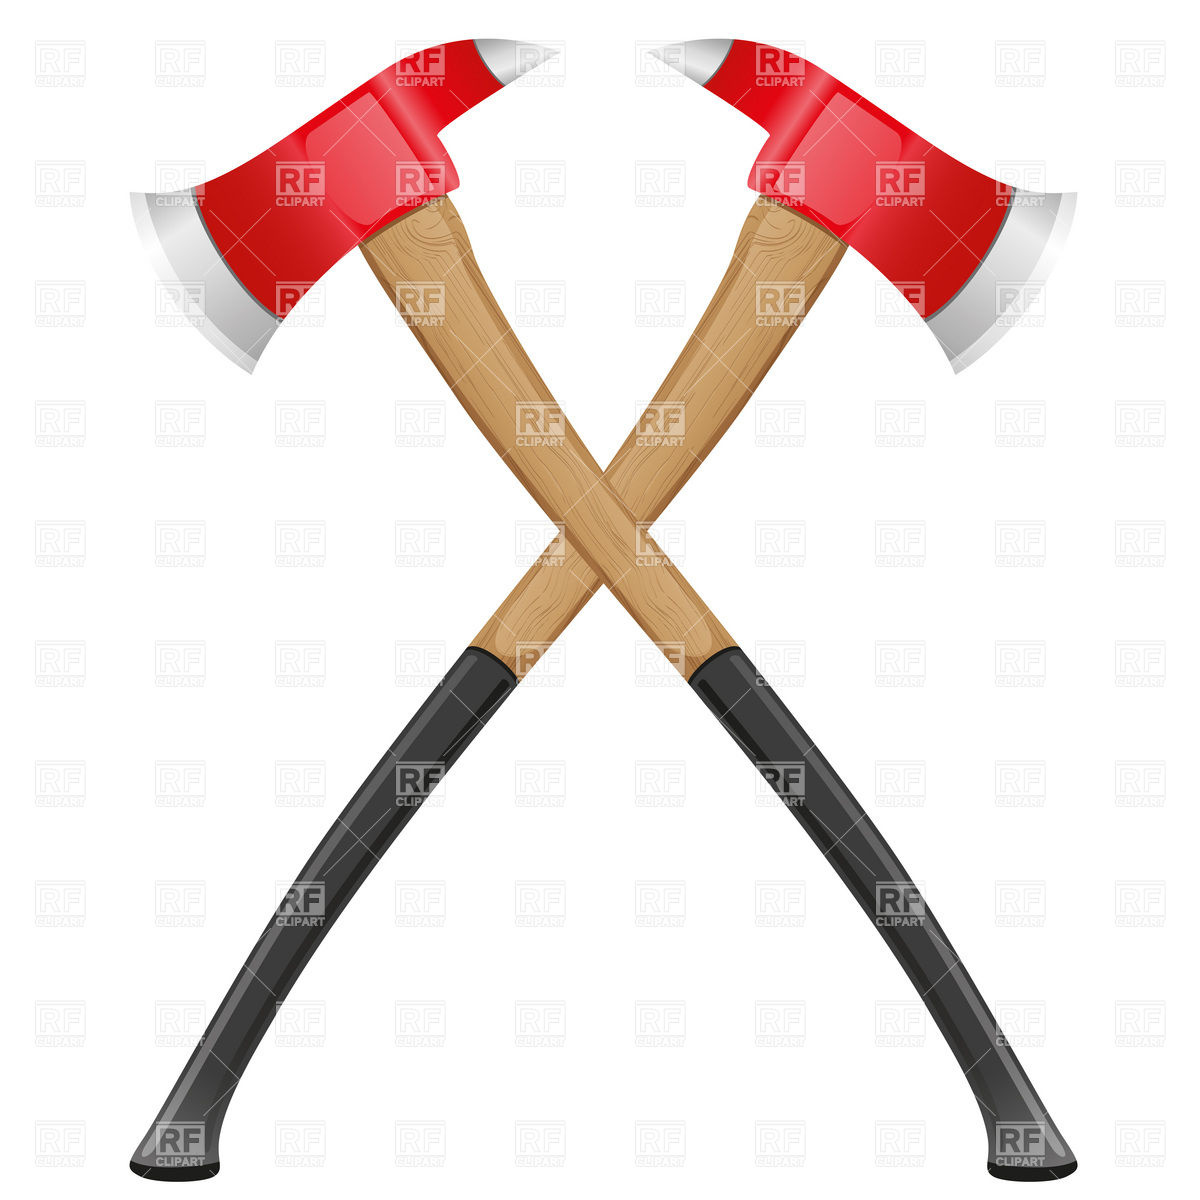 Axe clipart fire axe #9